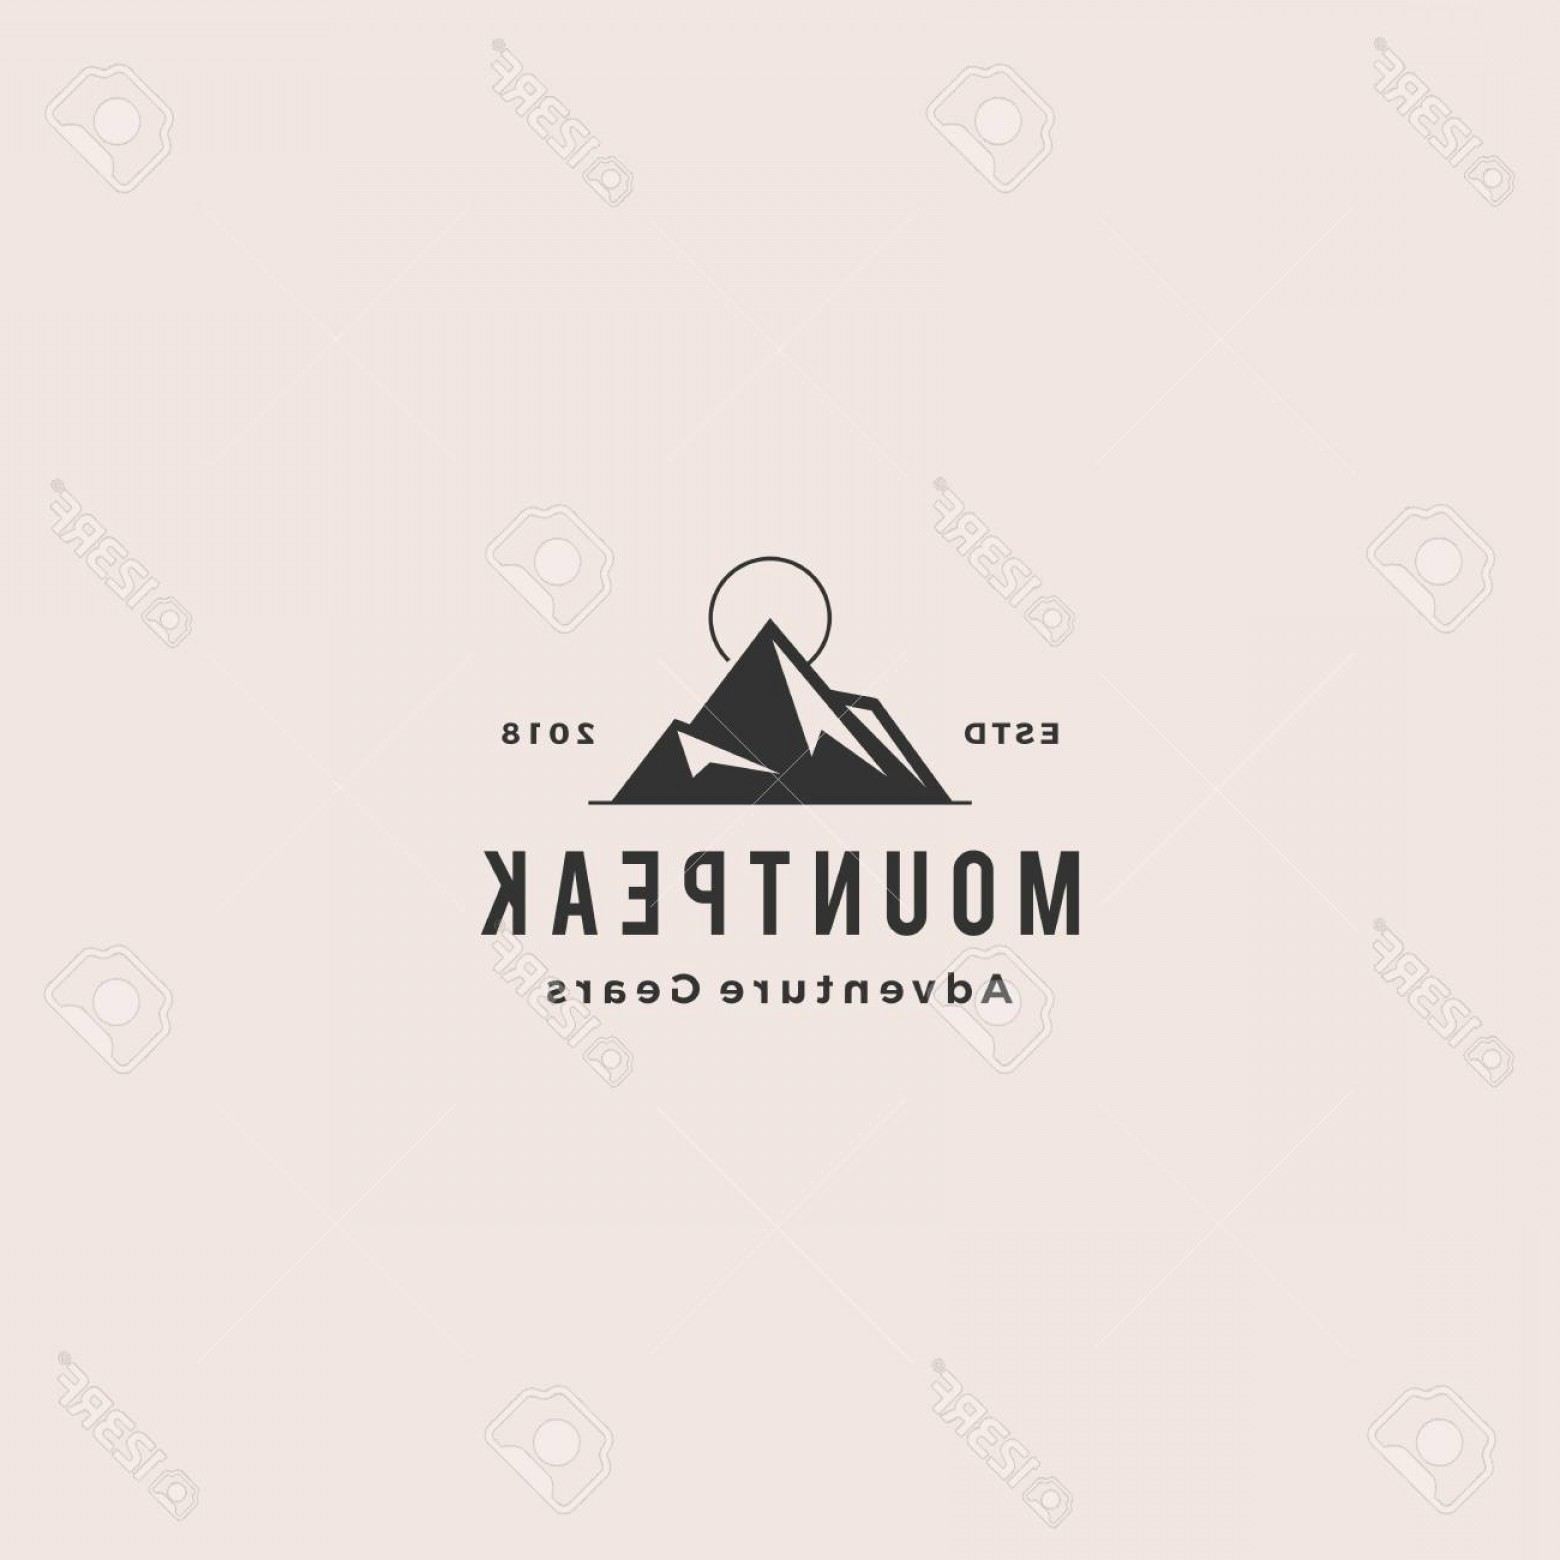 Hipster Logo Vectors Mountain: Photostock Vector Mount Peak Mountain Logo Hipster Vintage Retro Vector Icon Illustration